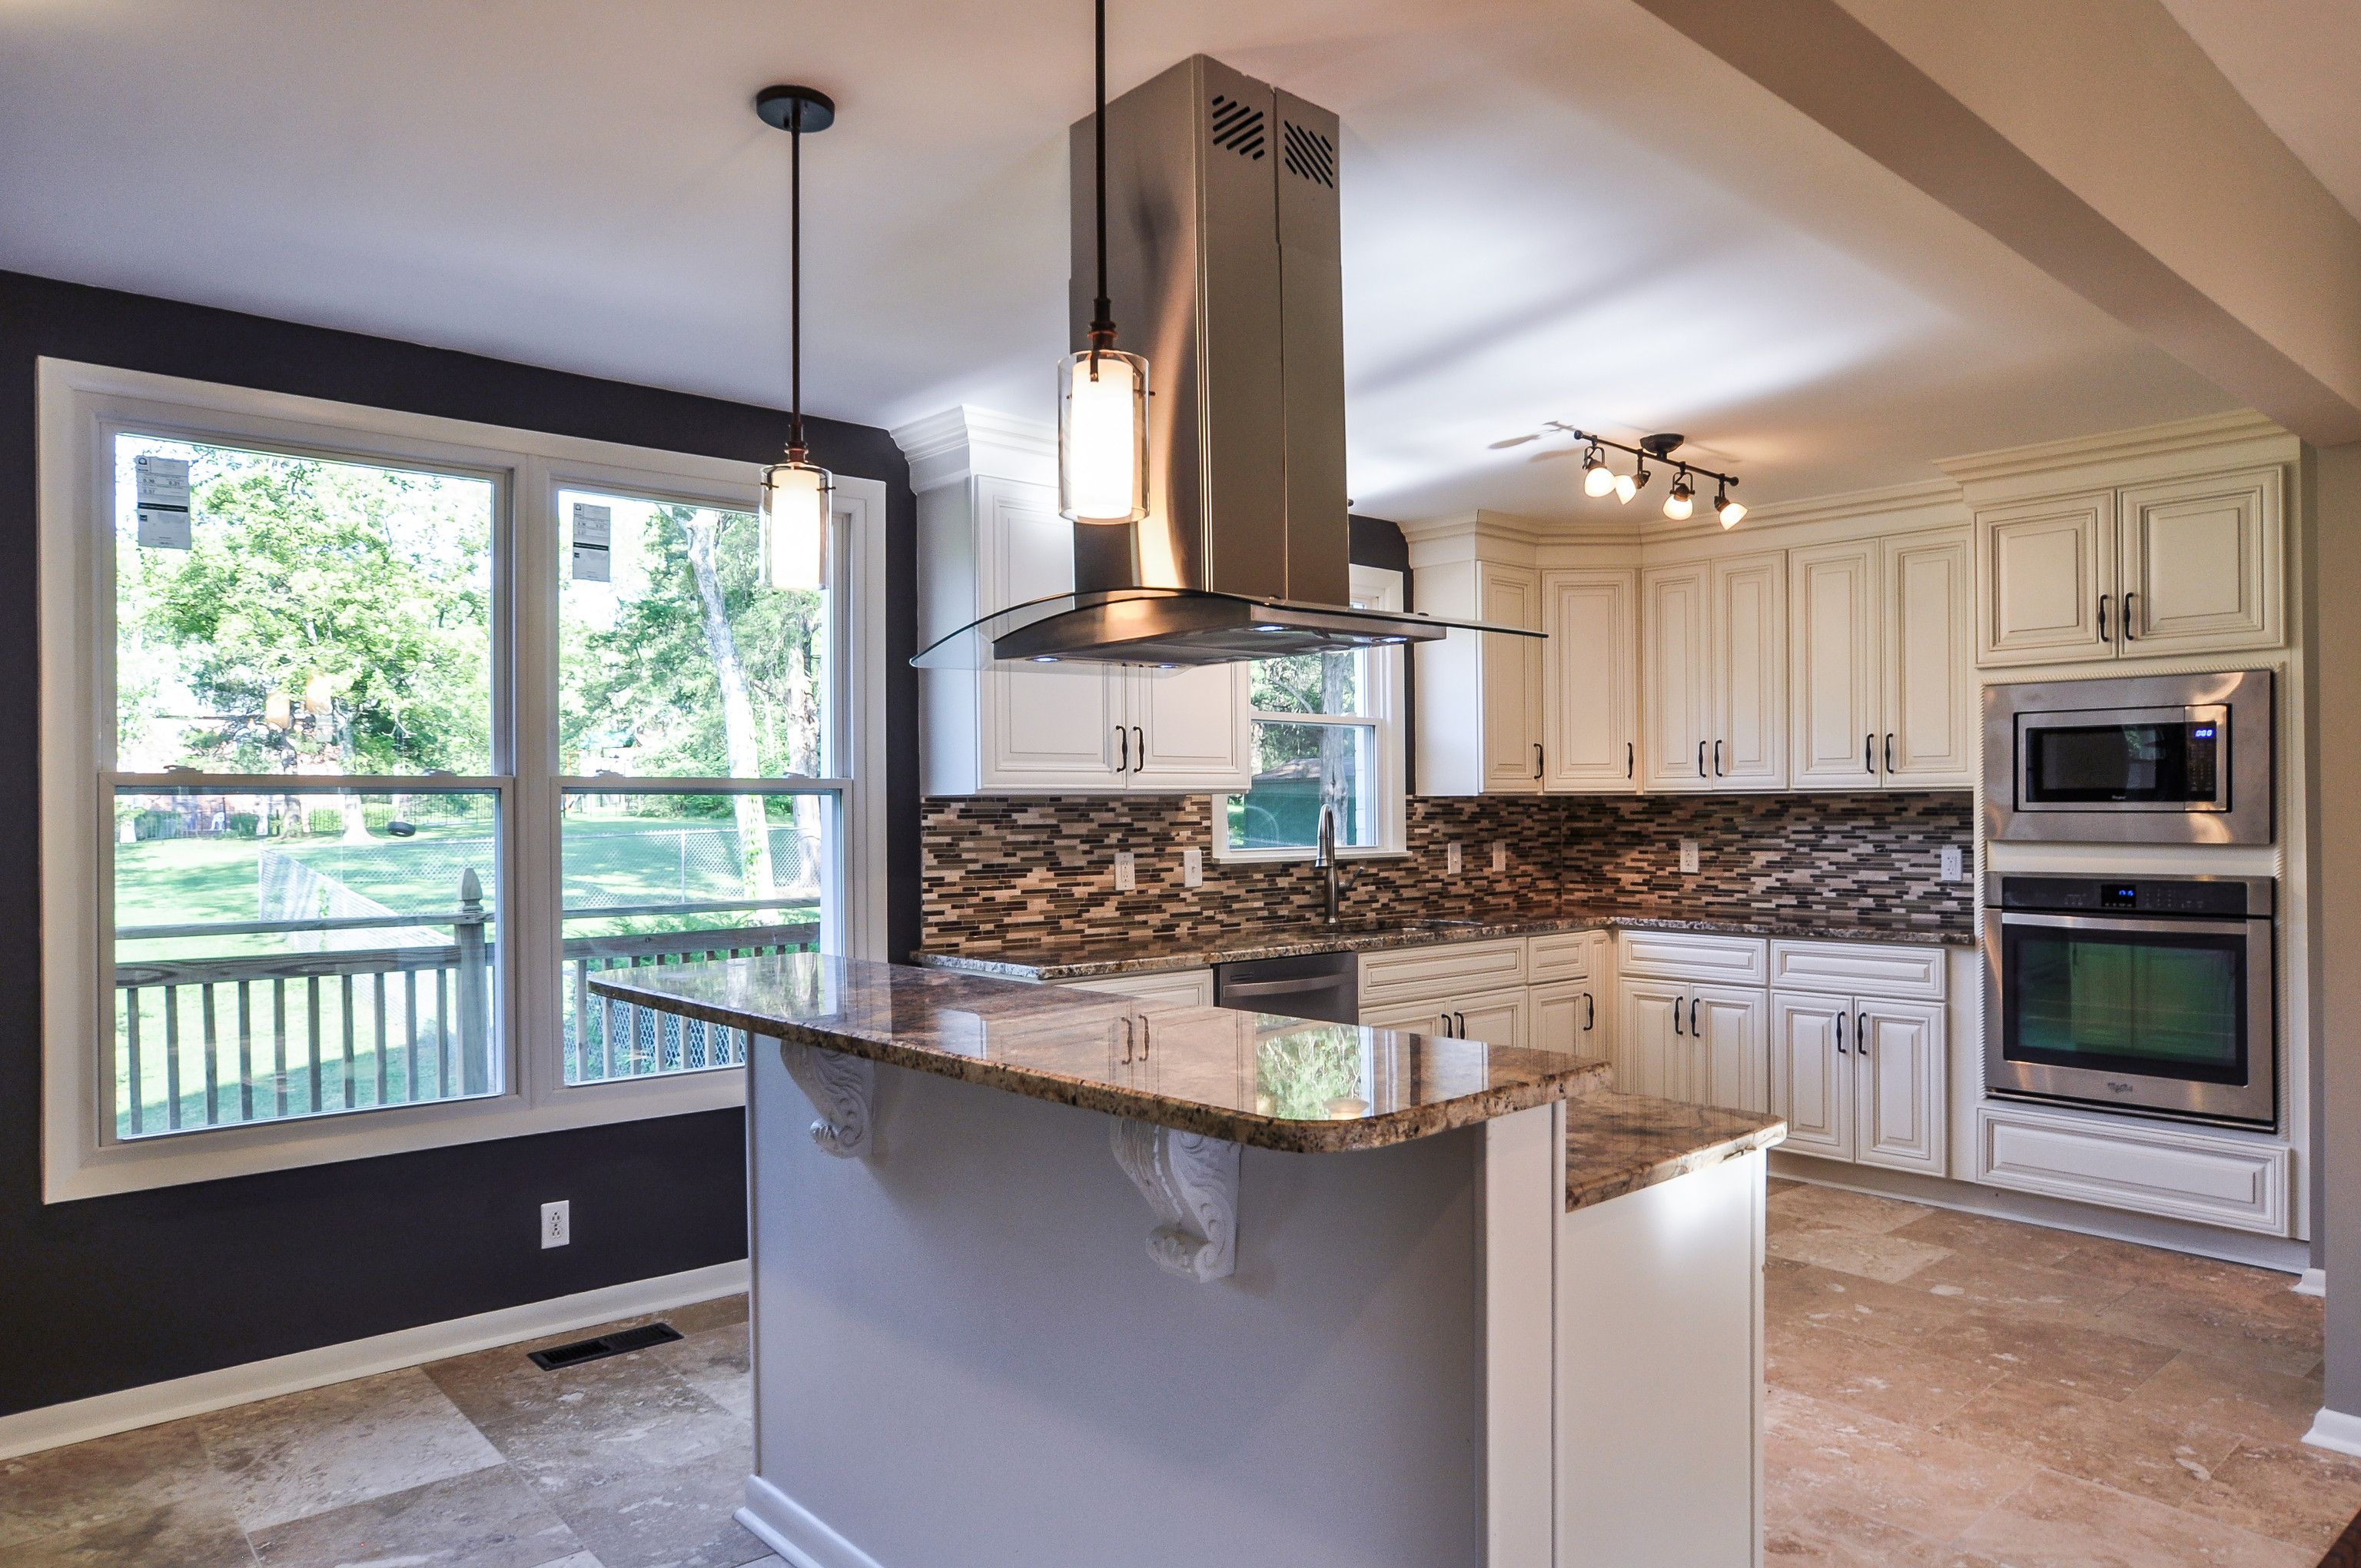 Pin By Procraft Cabinetry On Light And Fresh Quality Cabinets